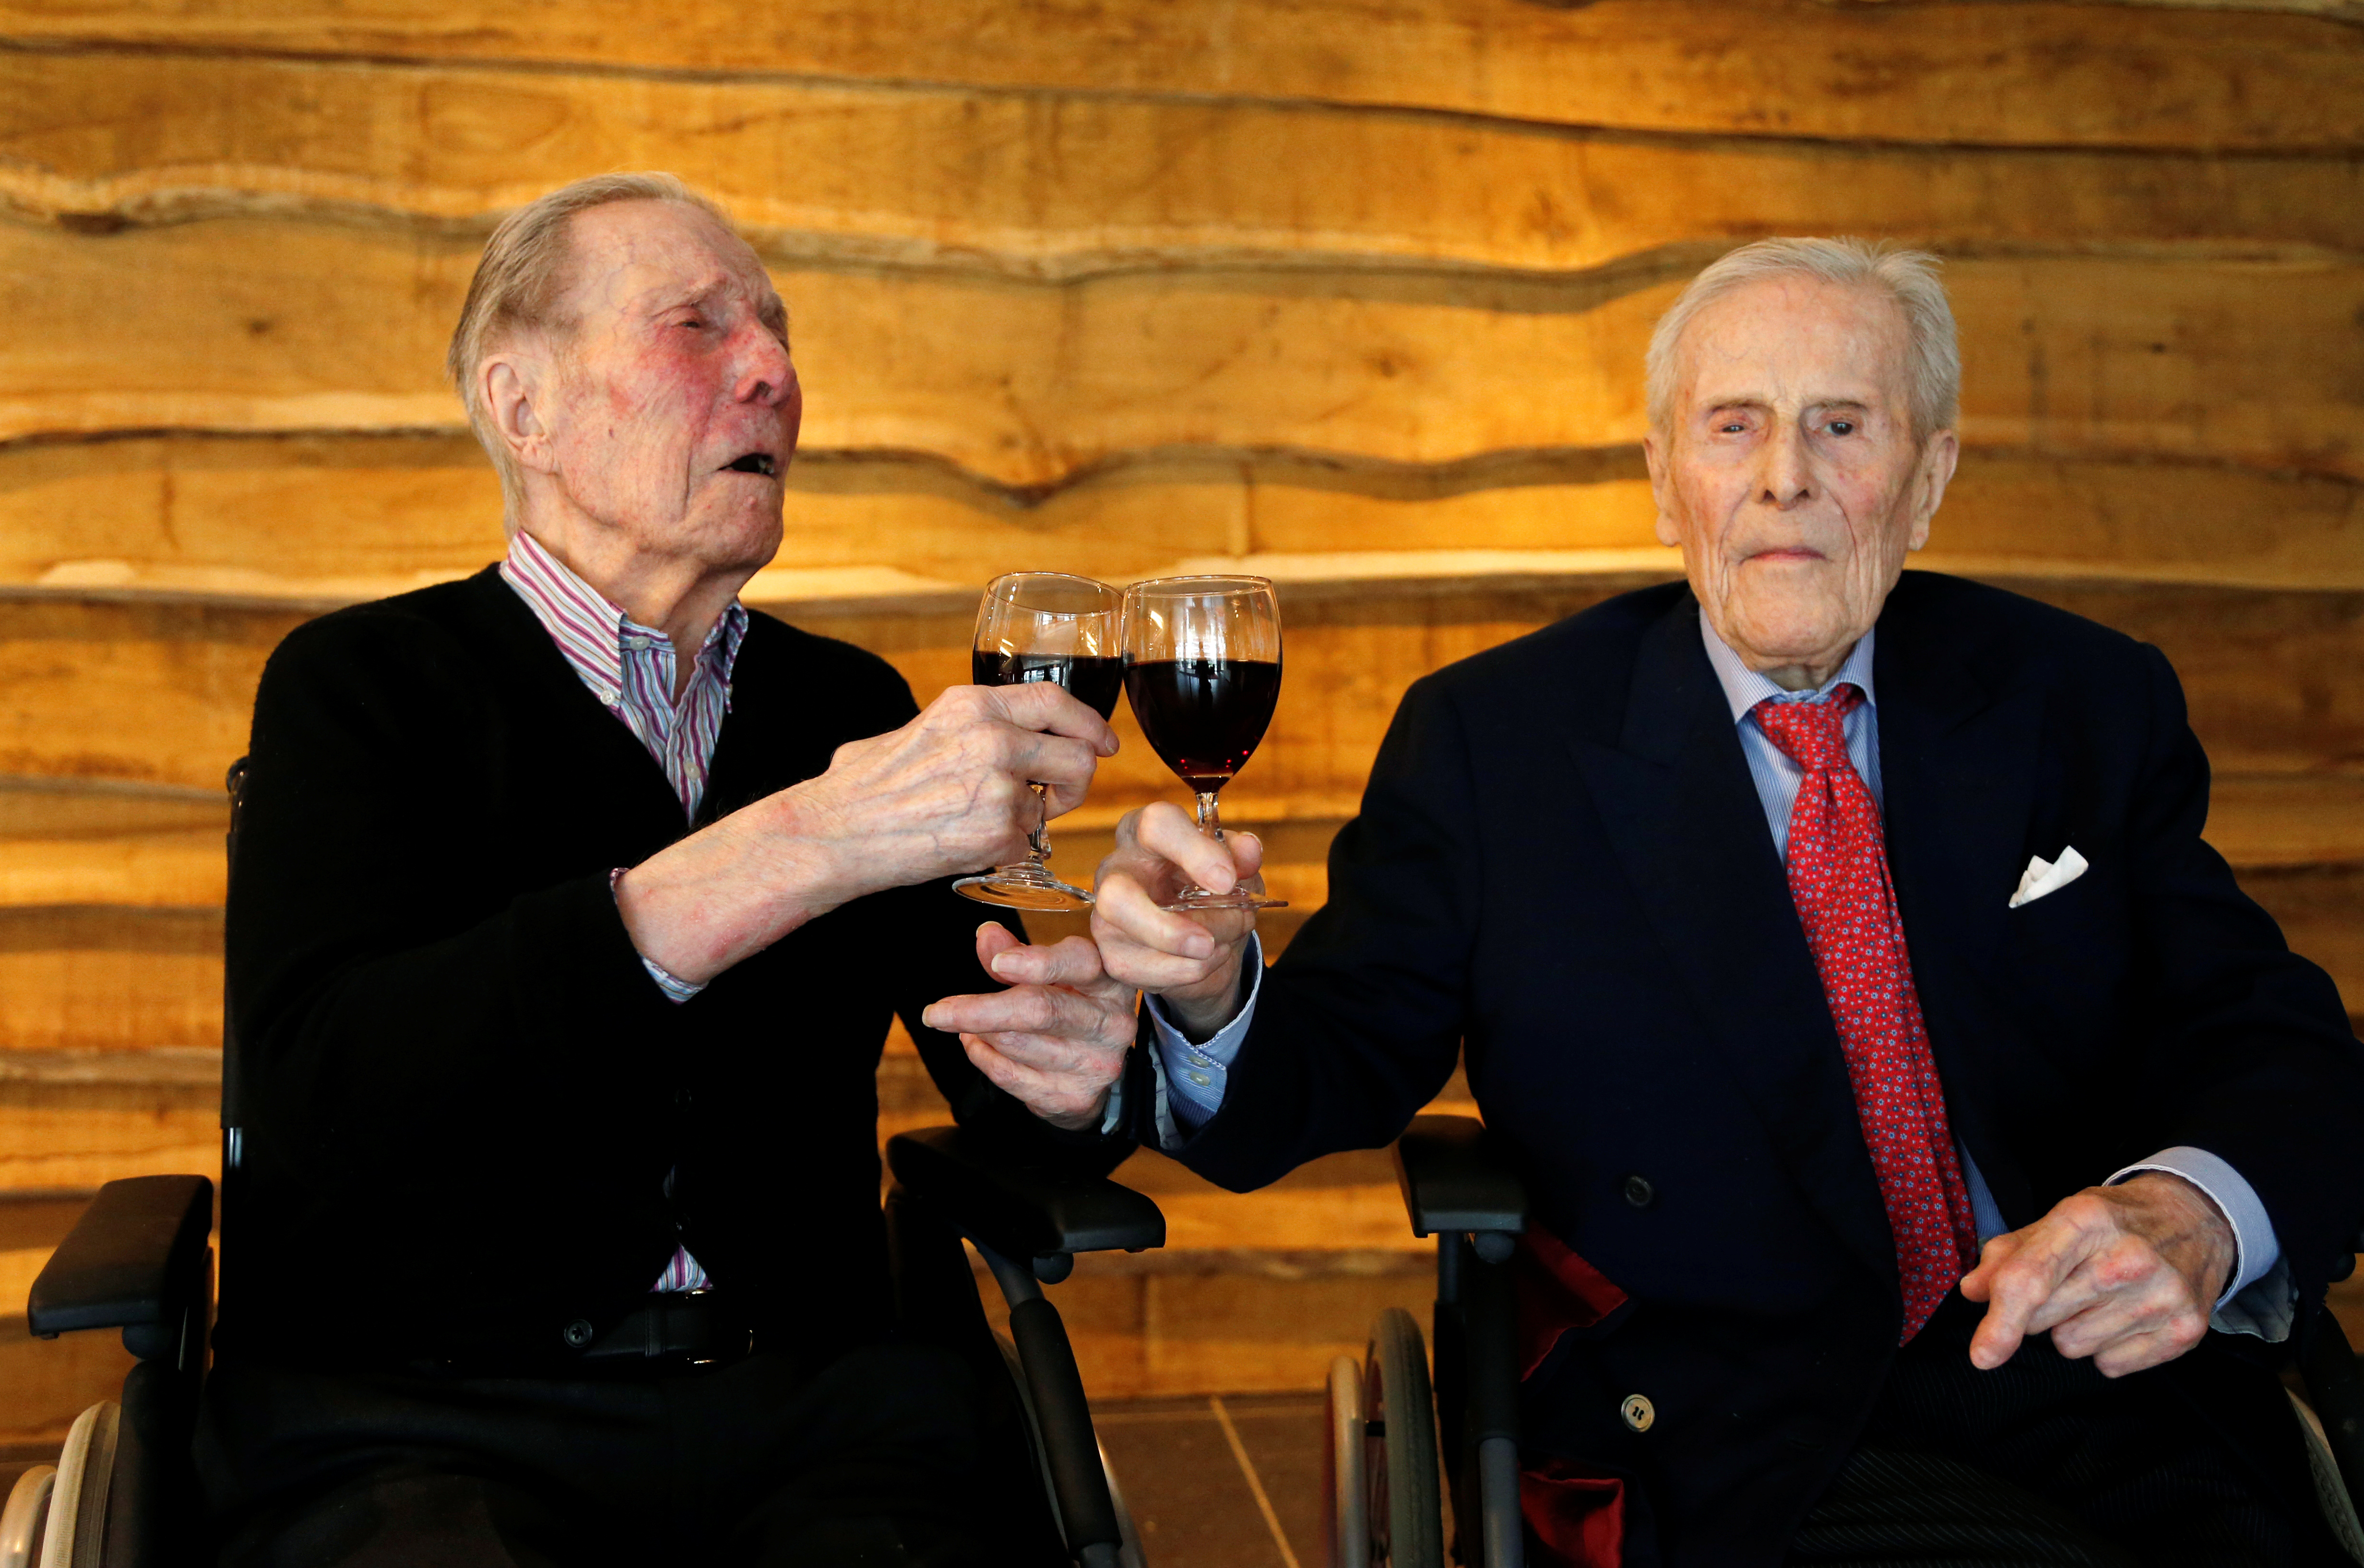 The world's oldest living twin brothers, Paulus (L) and Pieter Langerock from Belgium, 102, toast with a glass of red wine at the Ter Venne retirement home in Sint-Martens-Latem, Belgium, July 4, 2016.